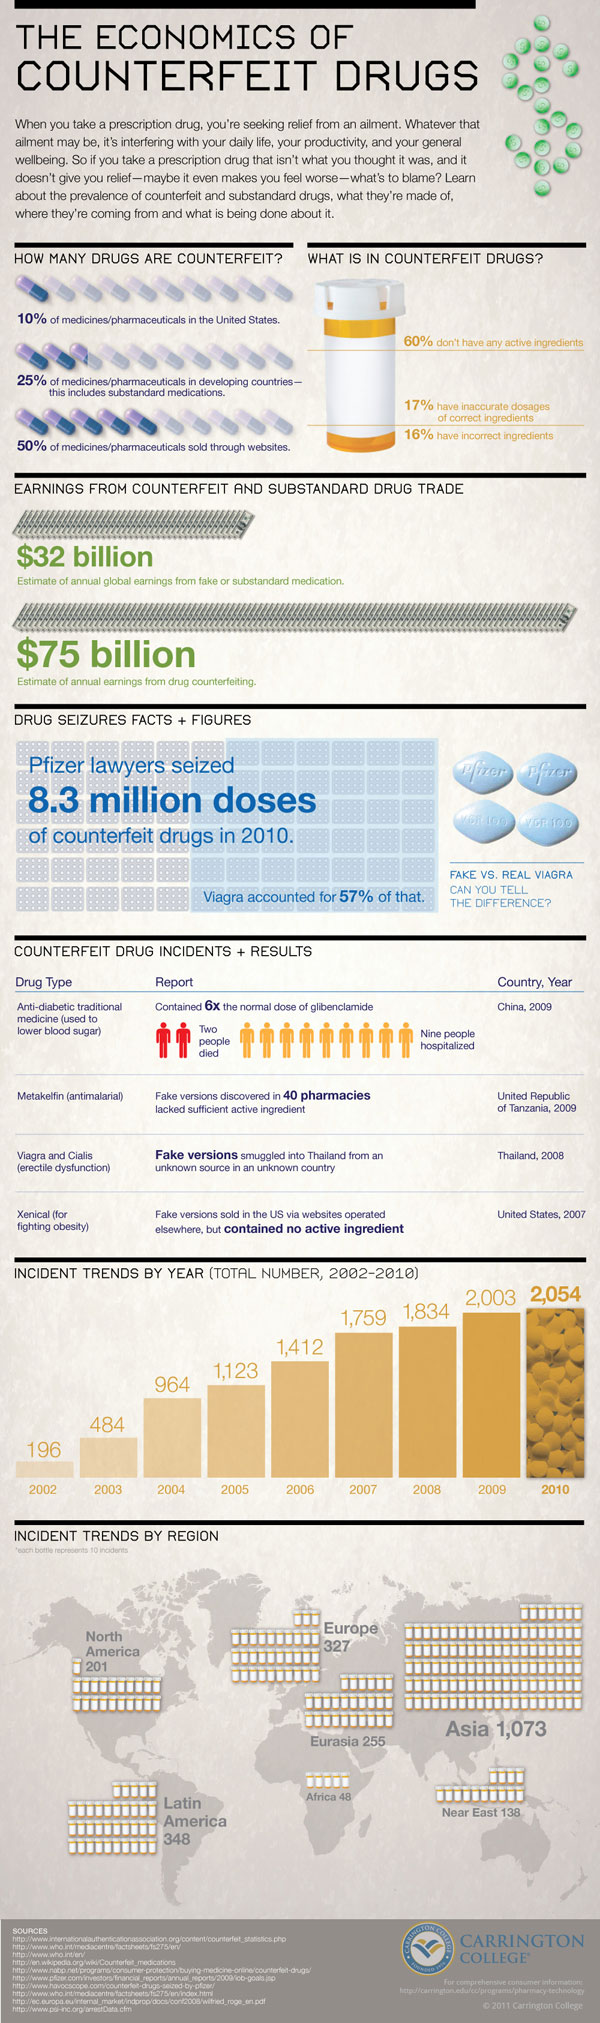 counterfeit-drugs-thumb-infographic